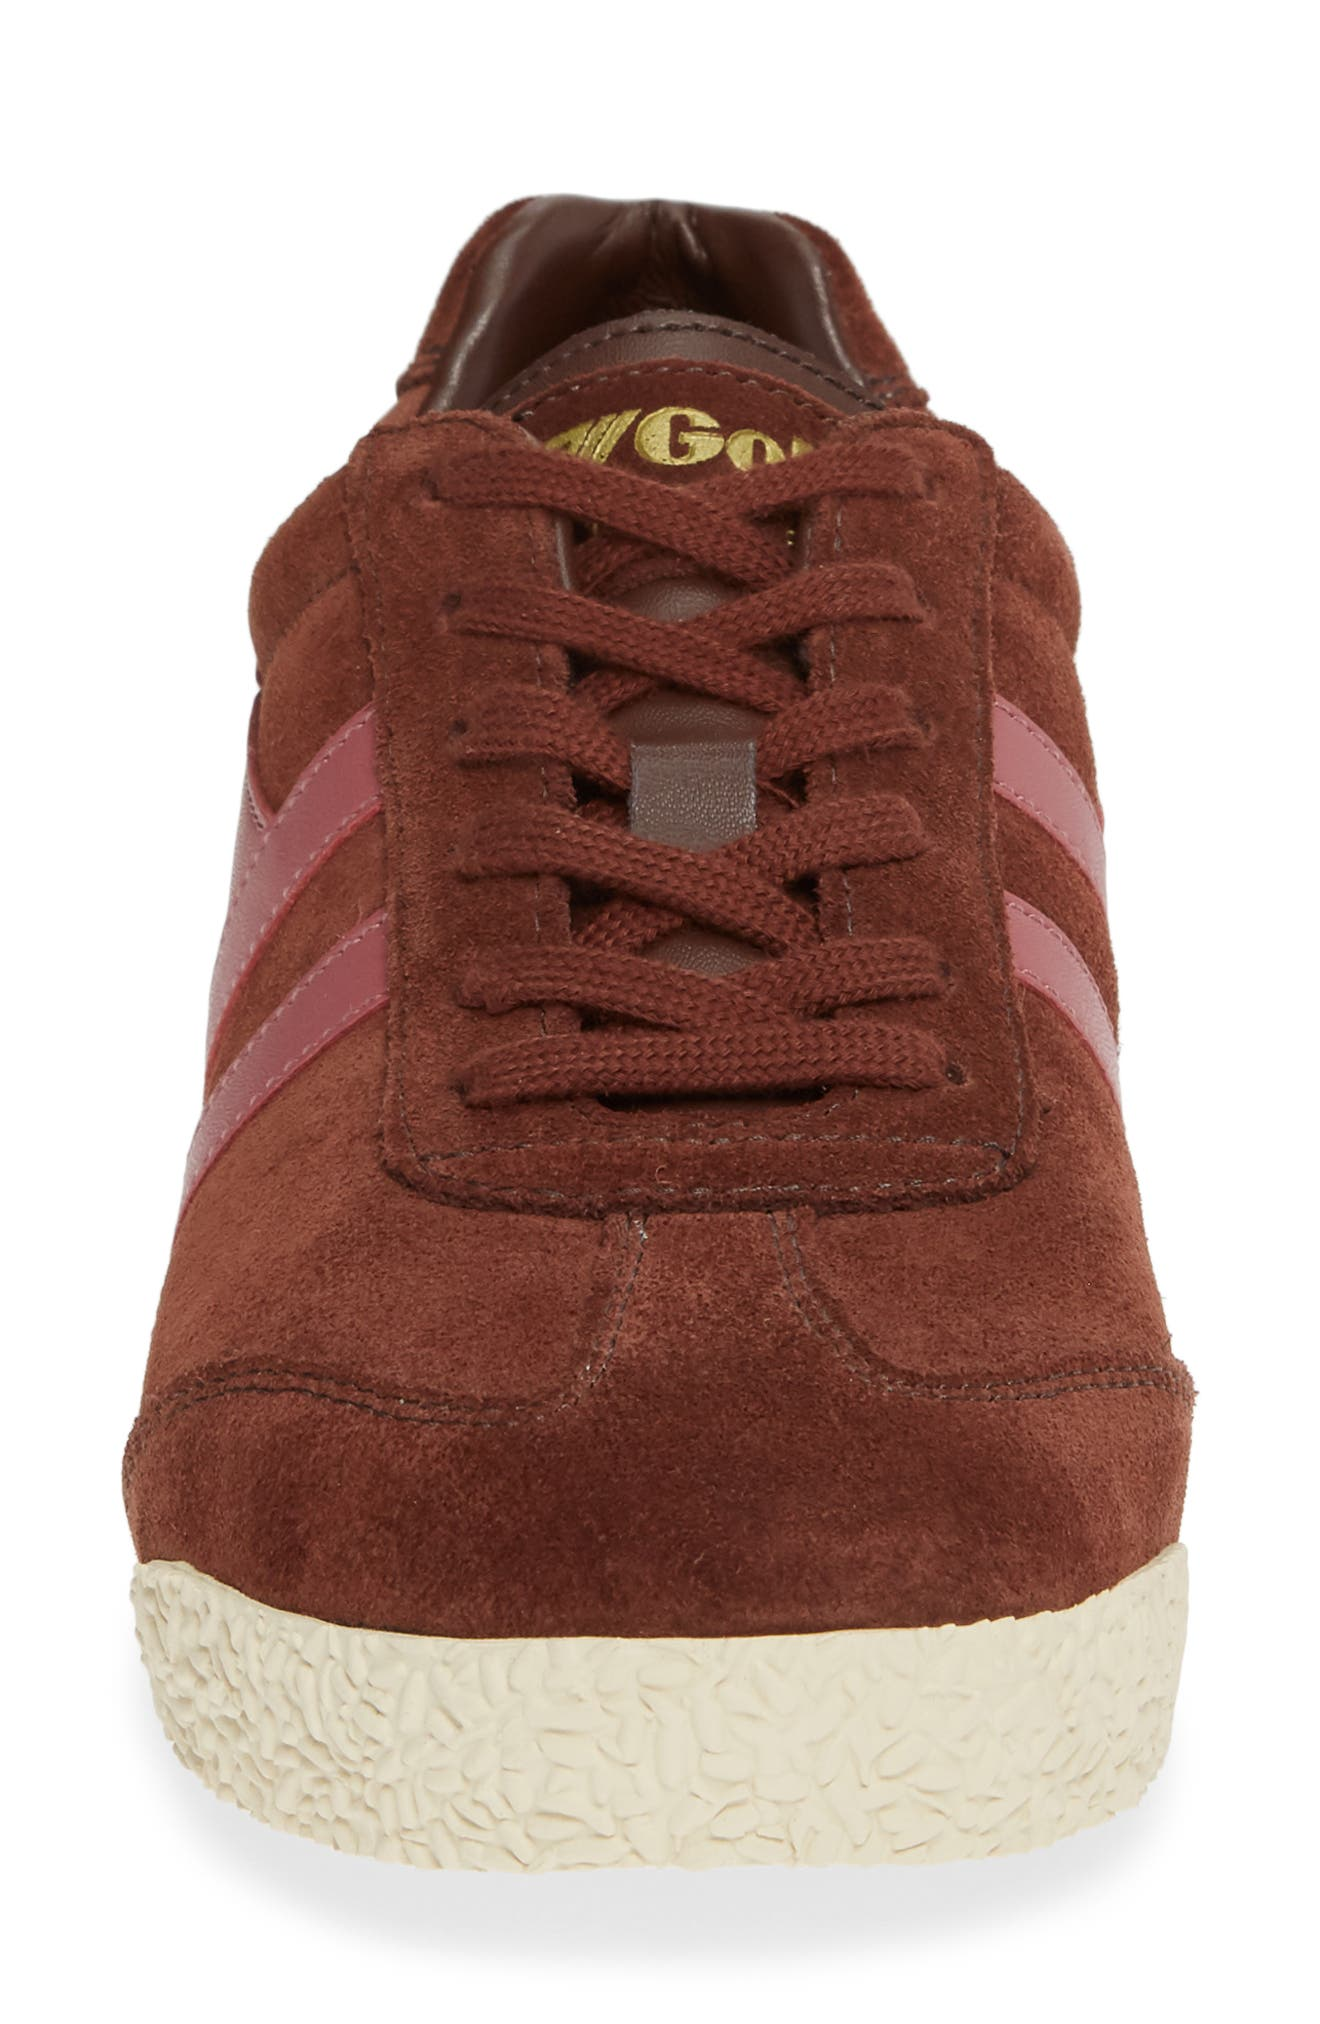 Harrier Suede Low Top Sneaker,                             Alternate thumbnail 4, color,                             COGNAC/ DUSTY ROSE